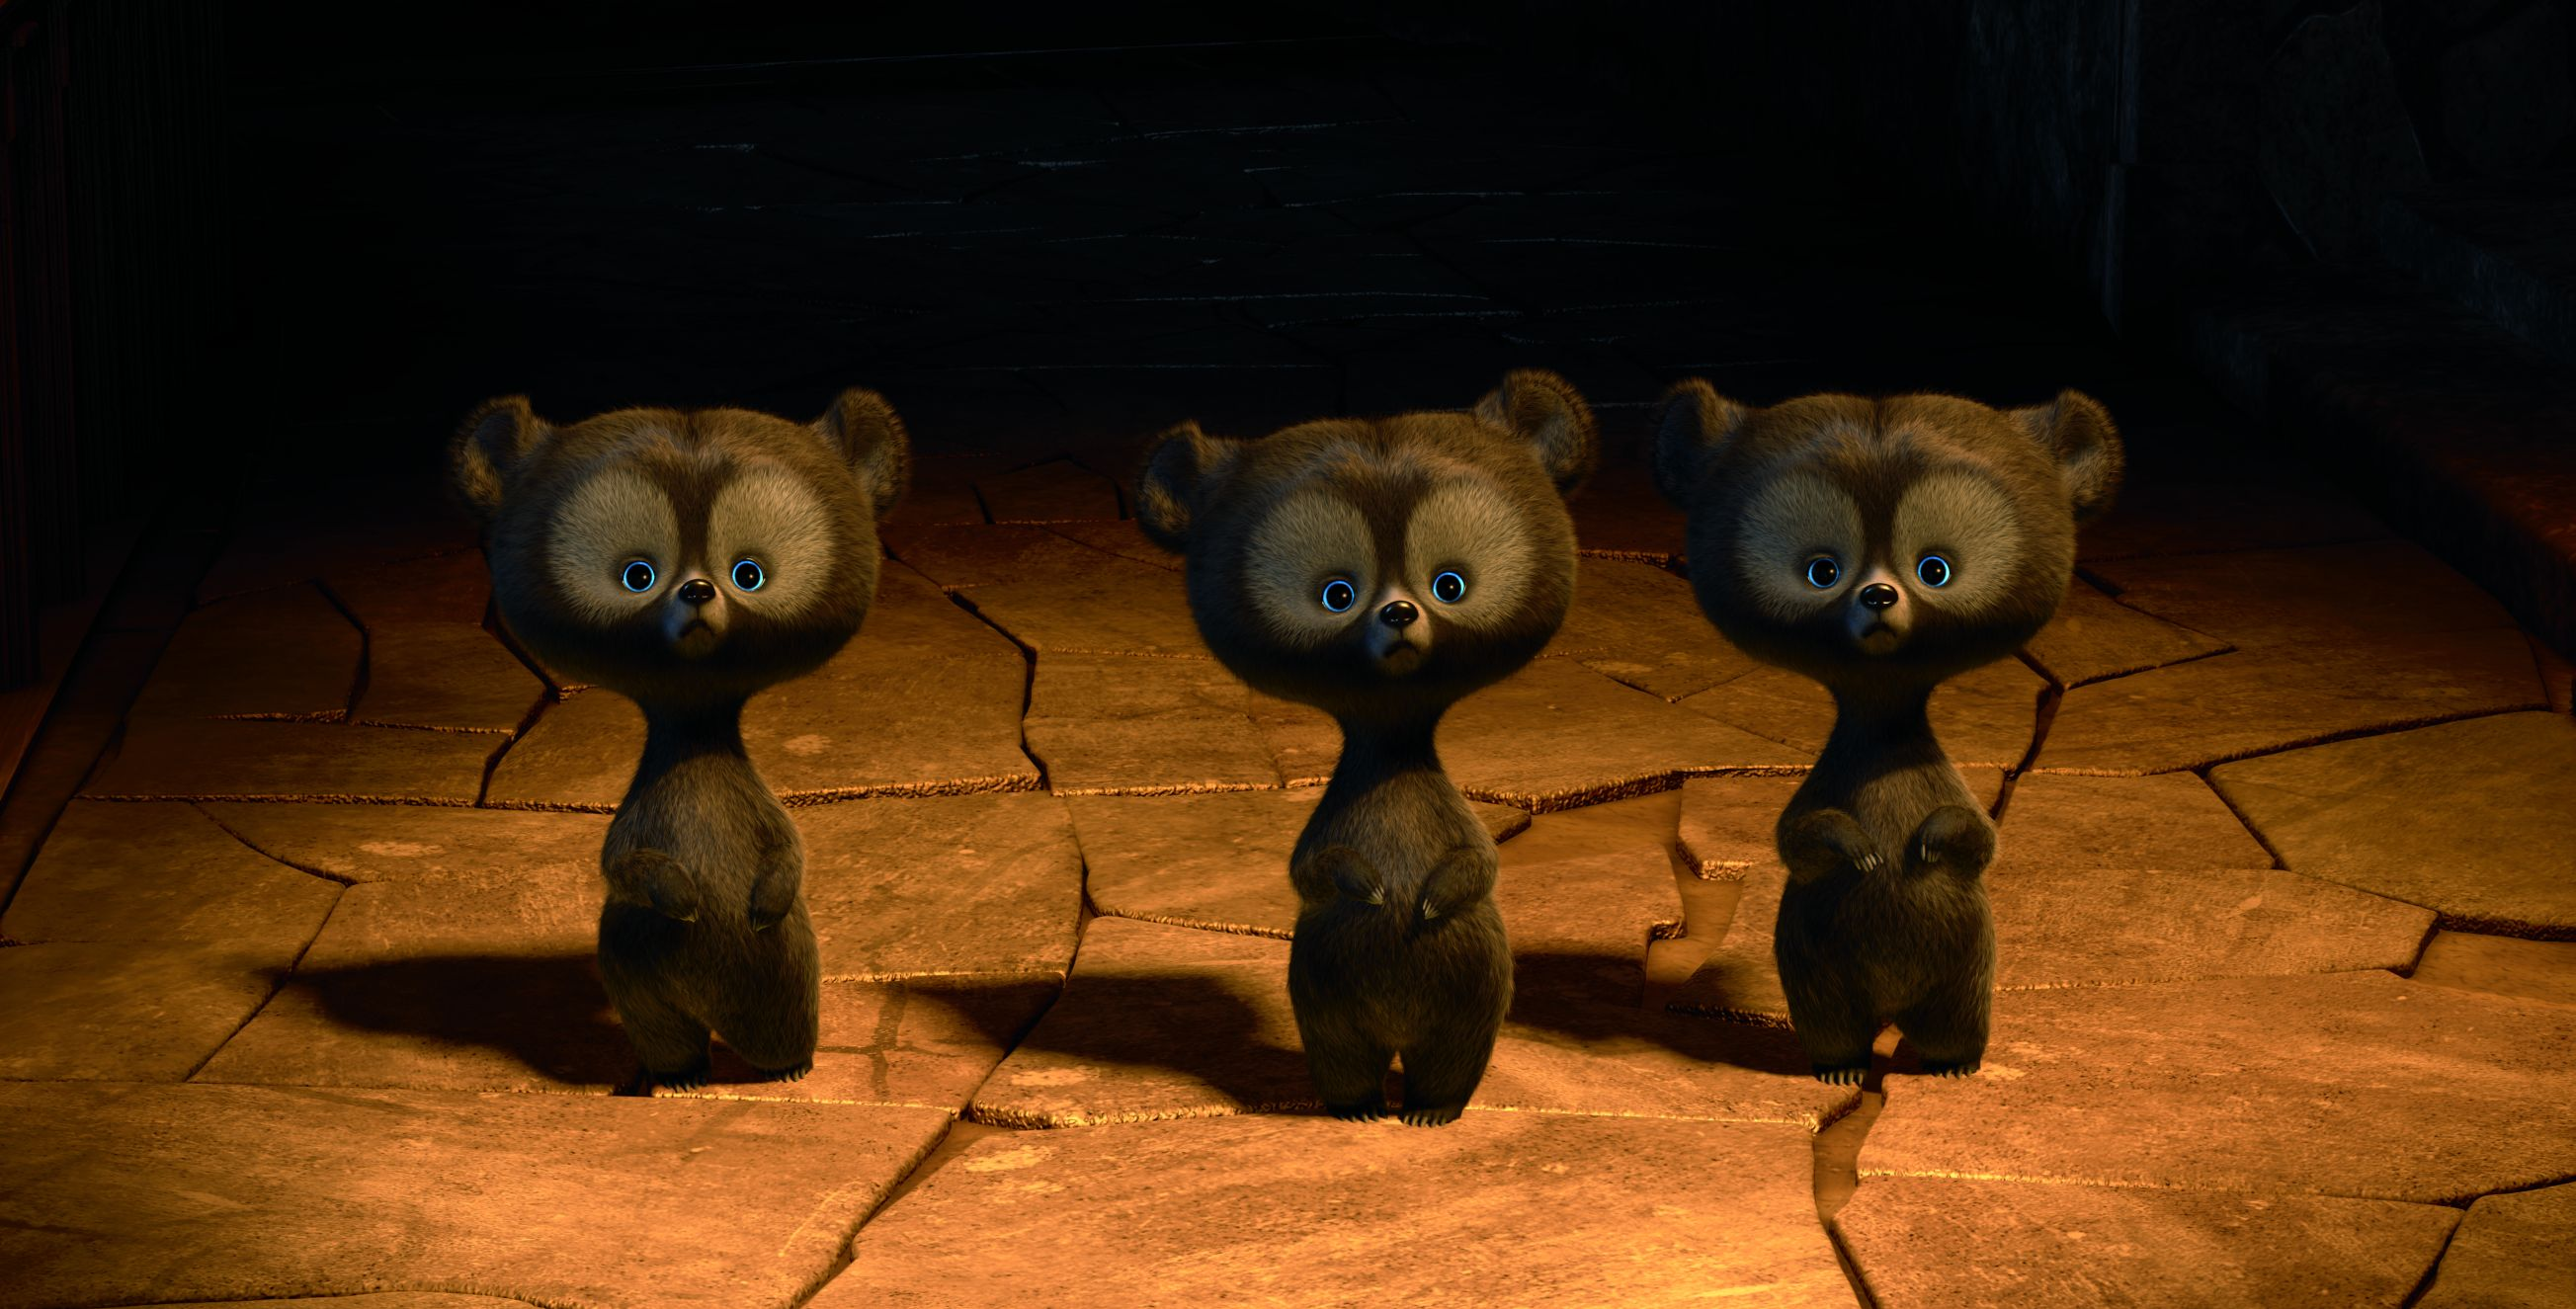 The triplets as cute bear cubs in Brave